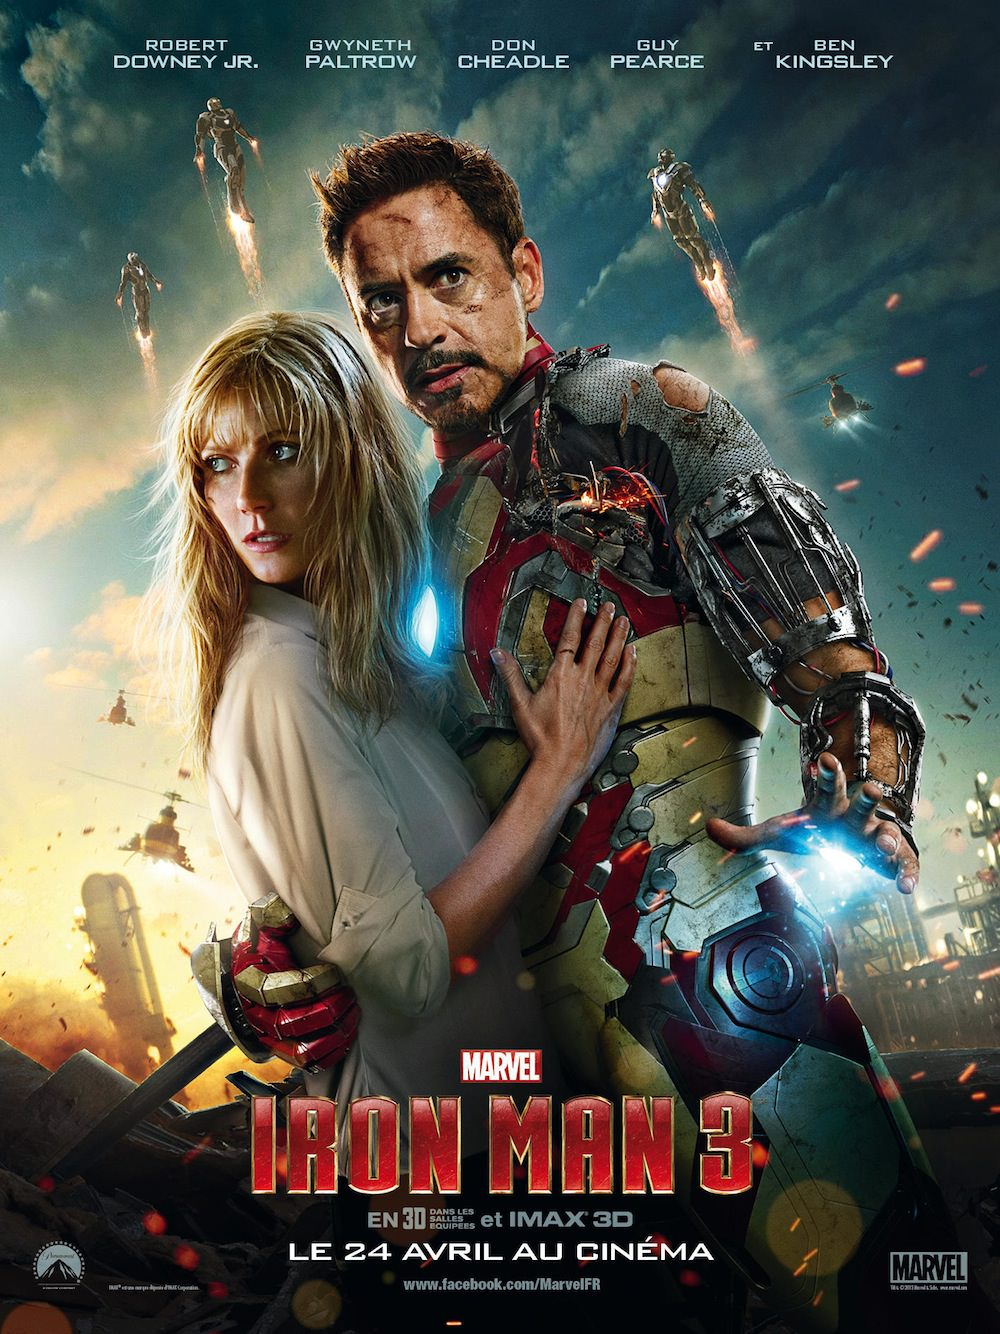 Iron man 3 shane black